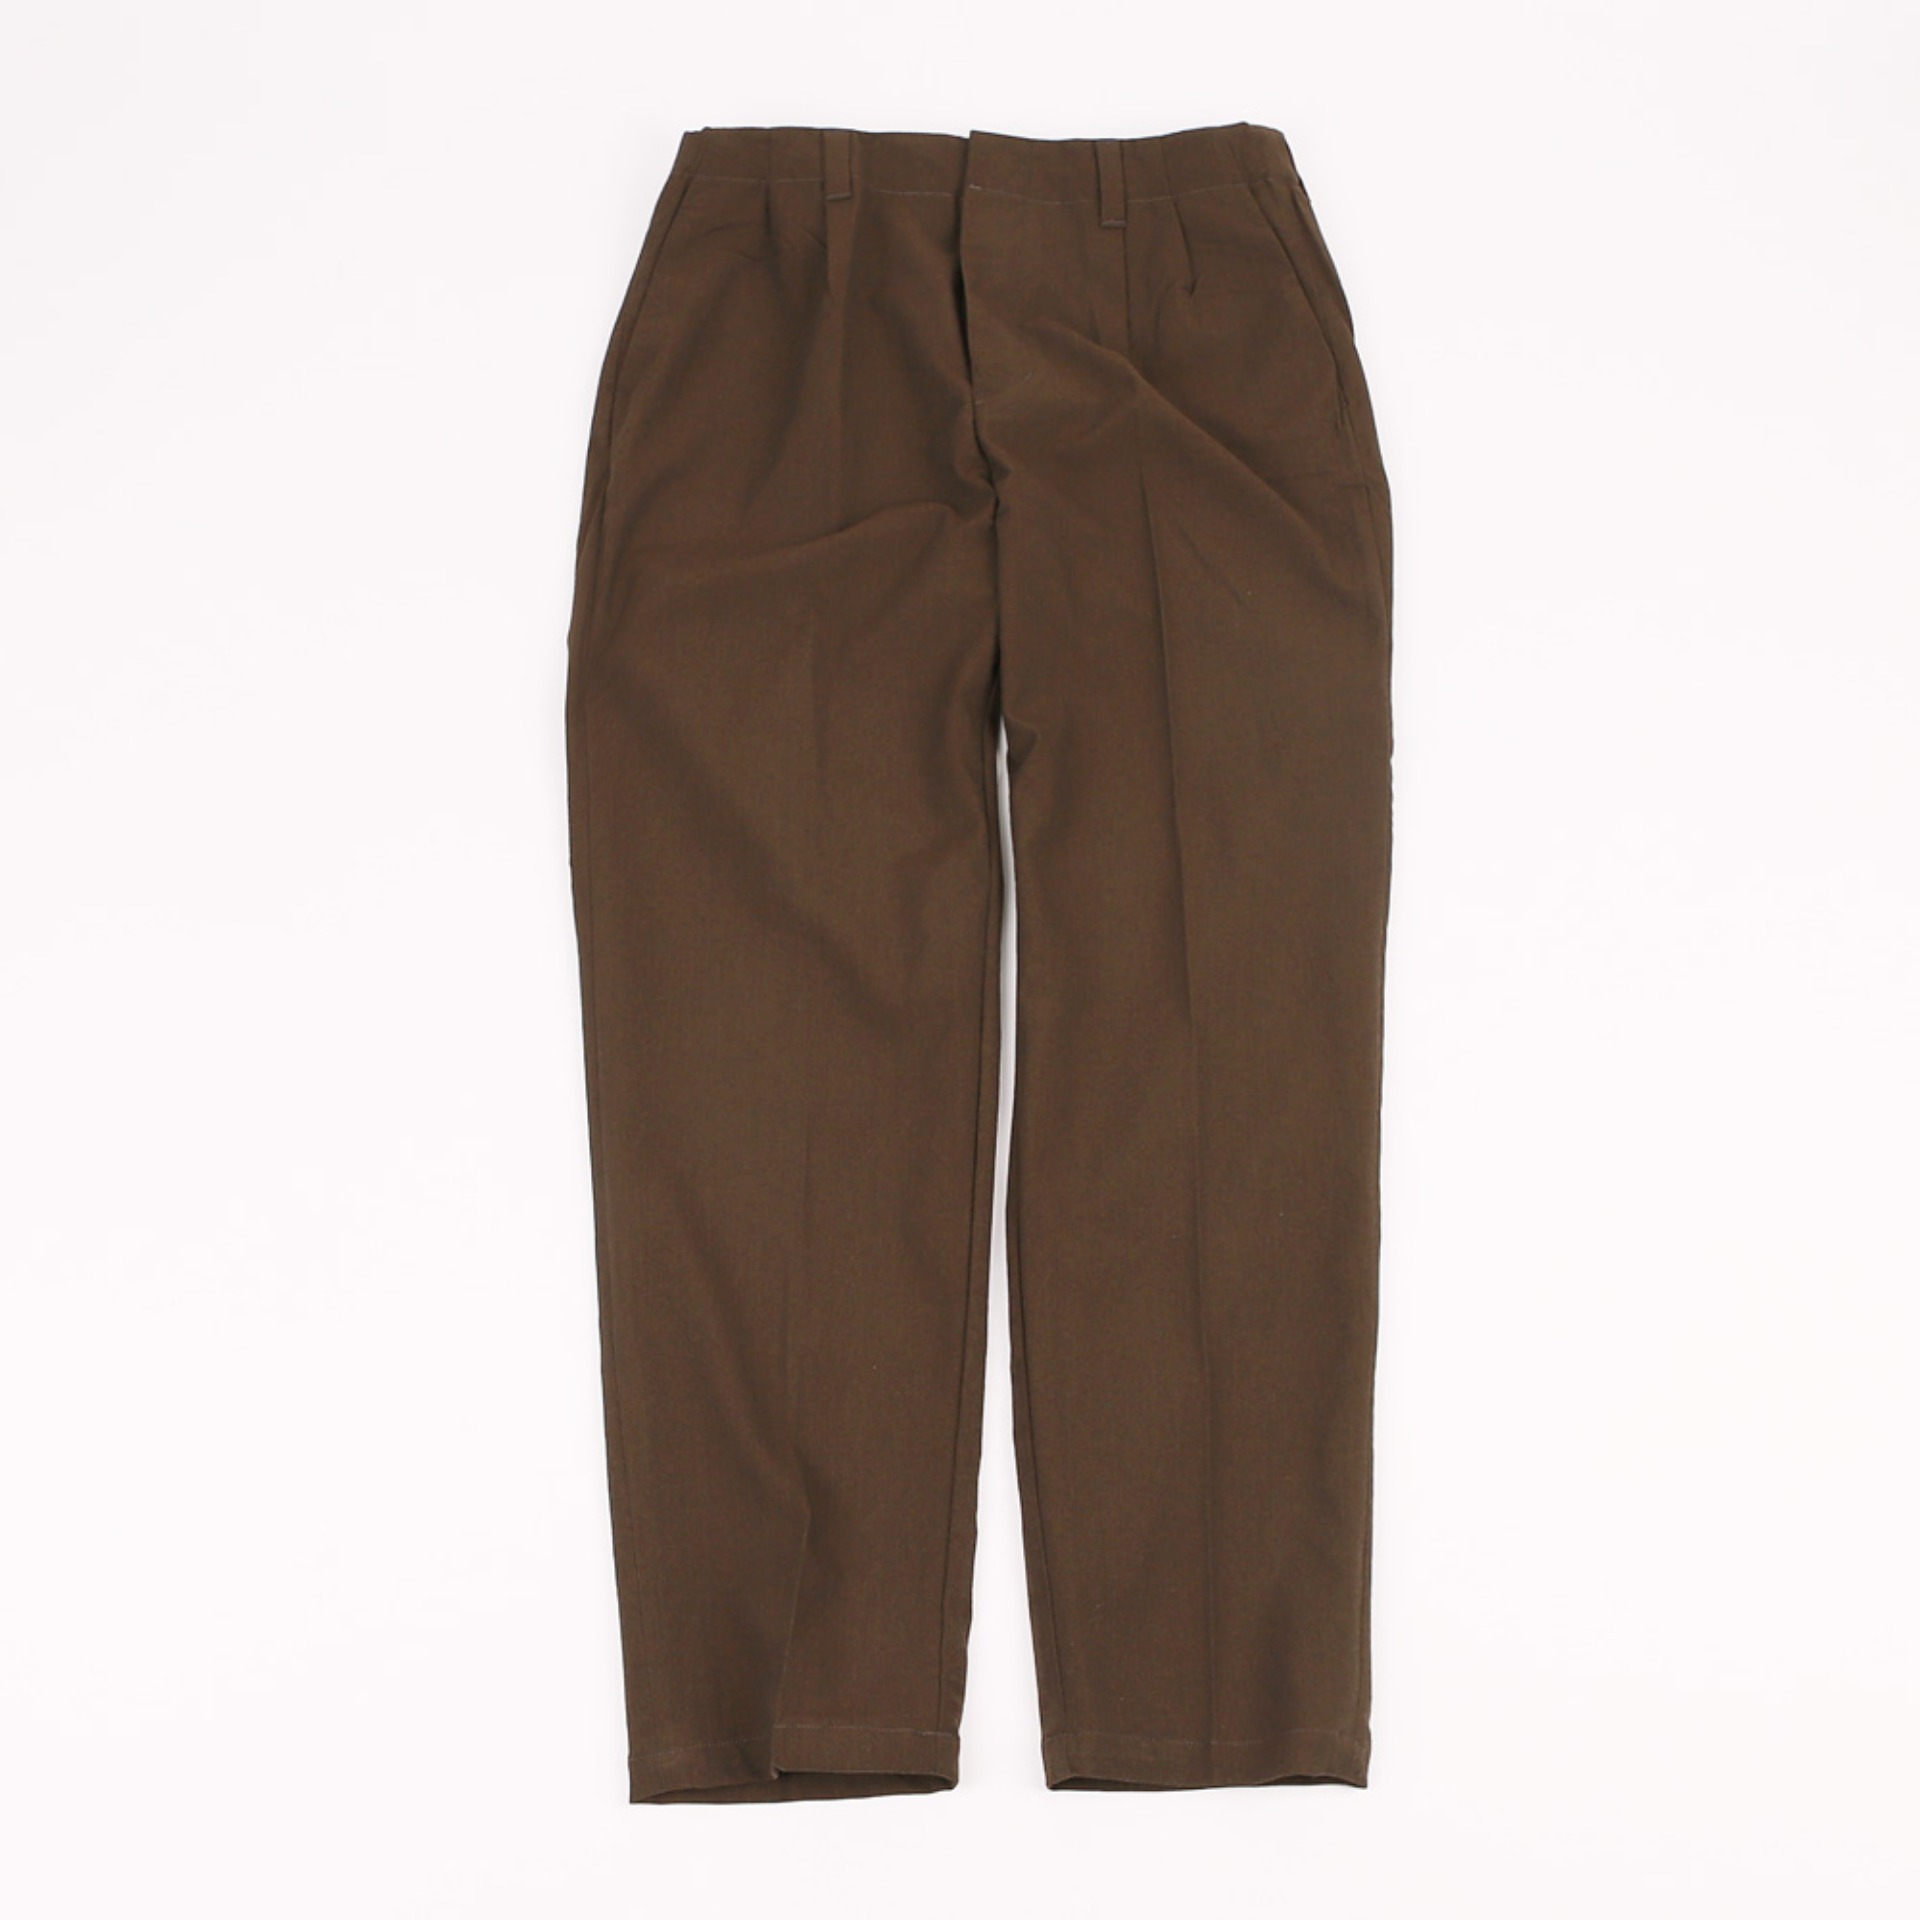 STILL BY HAND RELAX 2 TUCK PANTS Brown